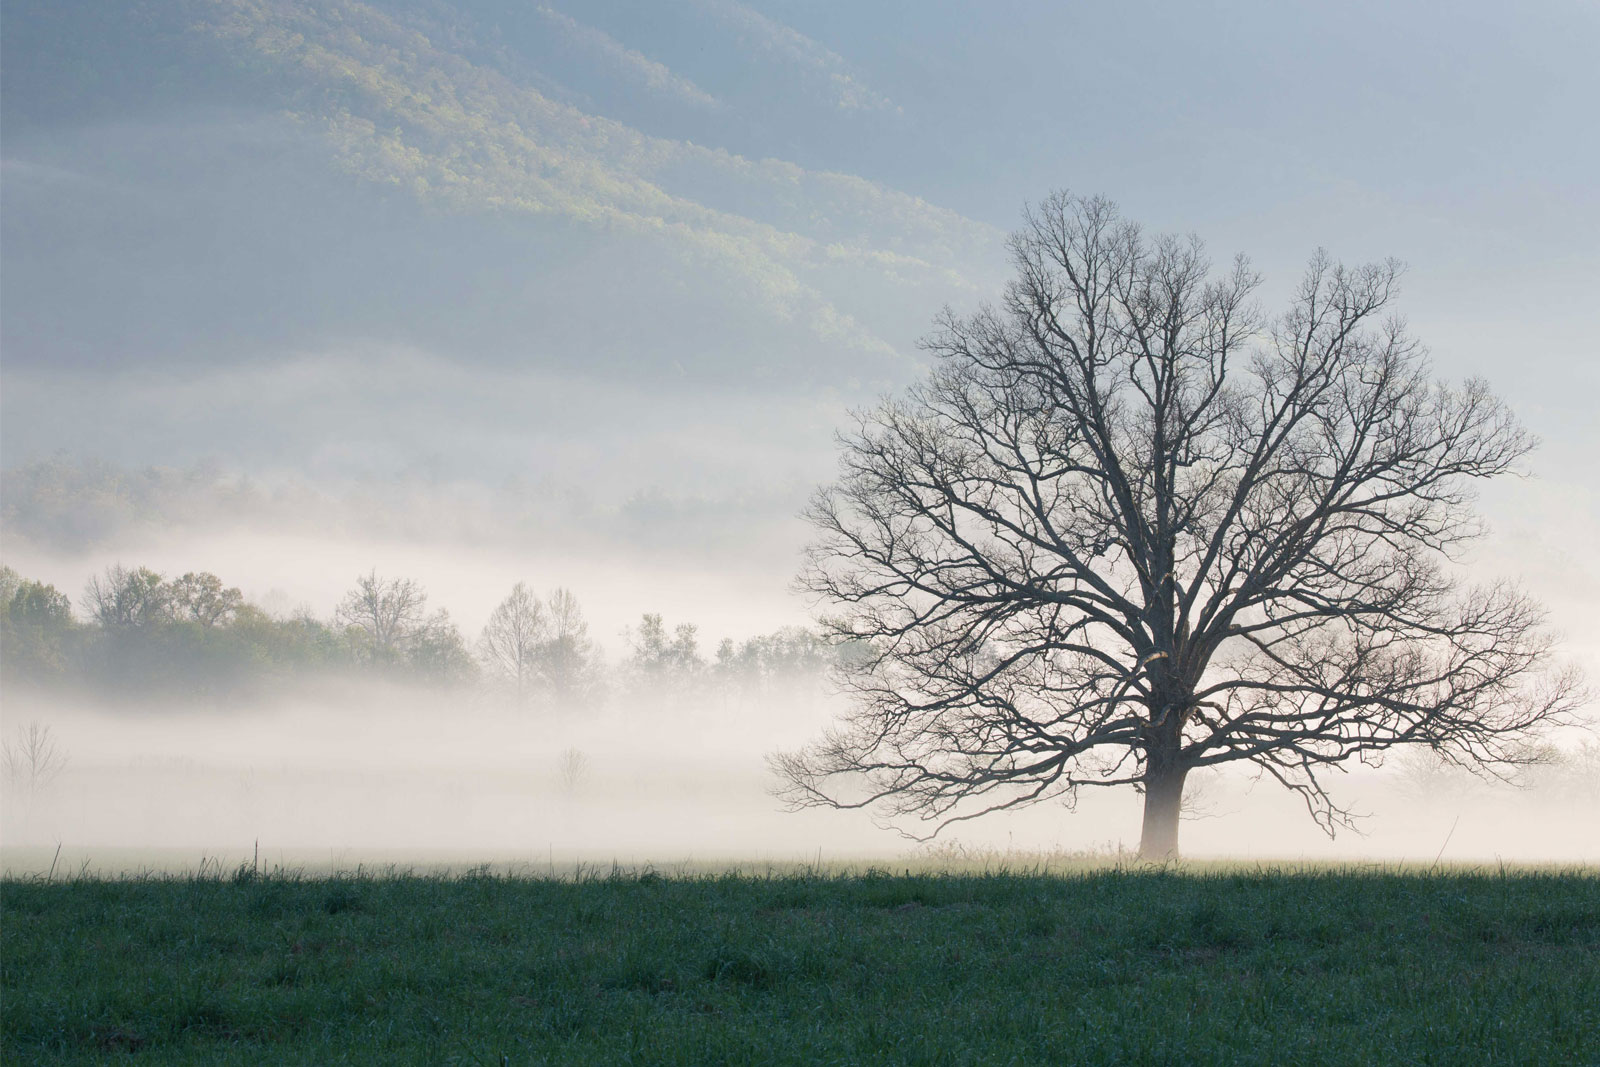 A tree surrounded by early morning fog in Cades Cove